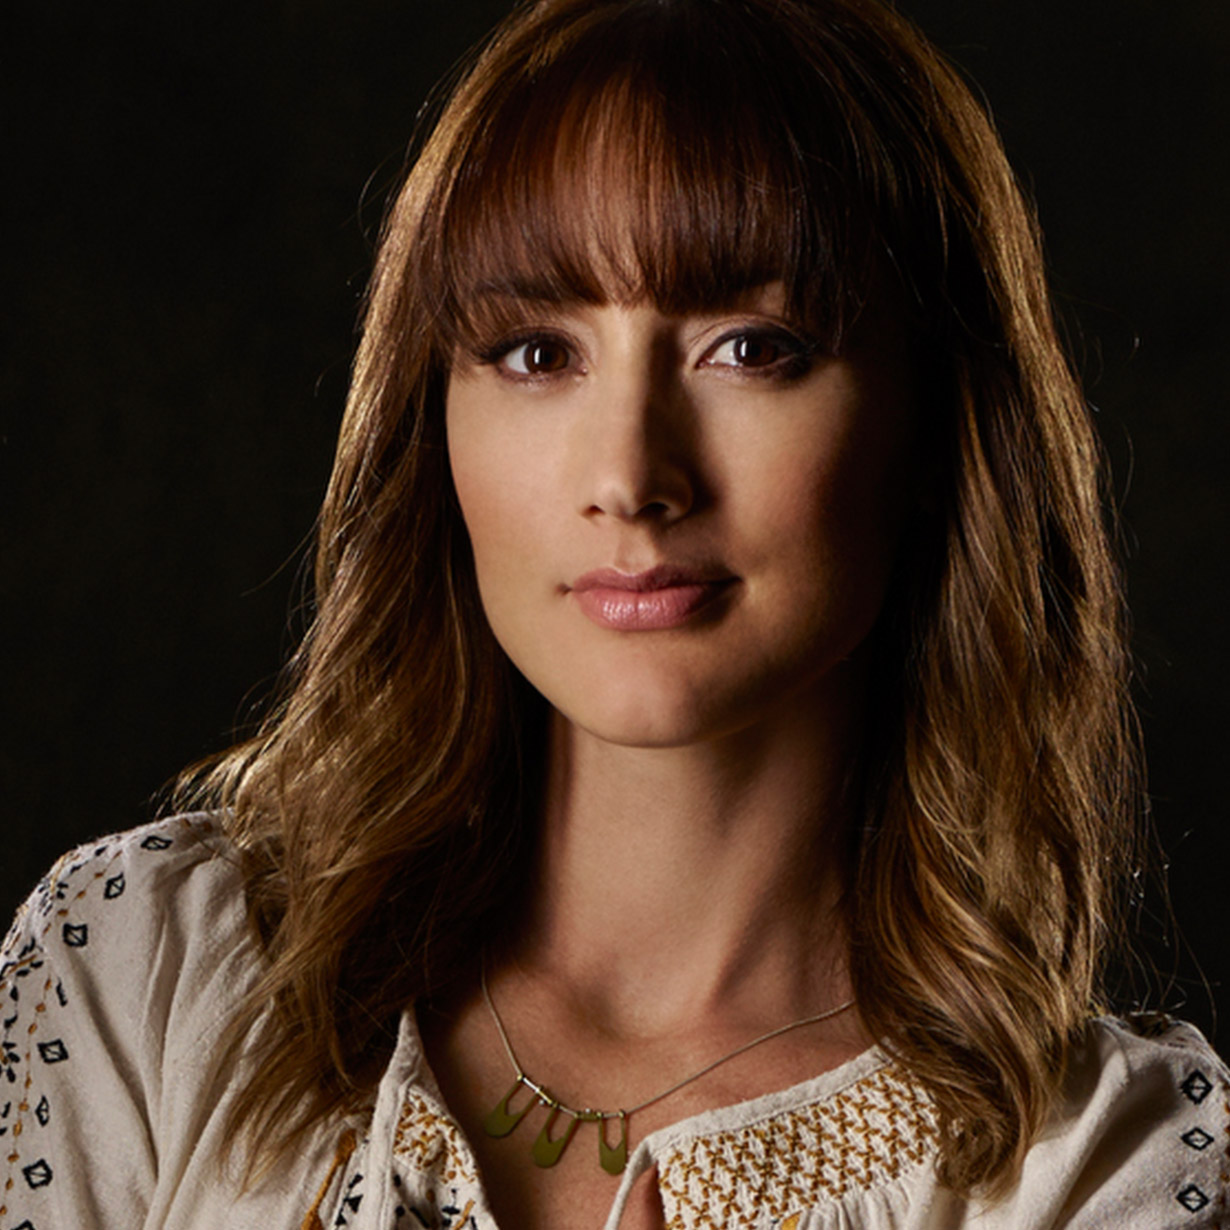 bree turner twitterbree turner movies and tv shows, bree turner grimm, bree turner father, bree turner height weight, bree turner age, bree turner net worth, bree turner wiki, bree turner dancing, bree turner instagram, bree turner husband, bree turner and justin saliman, bree turner maxim pictures, bree turner twitter, bree turner, bree turner schwanger, bree turner imdb